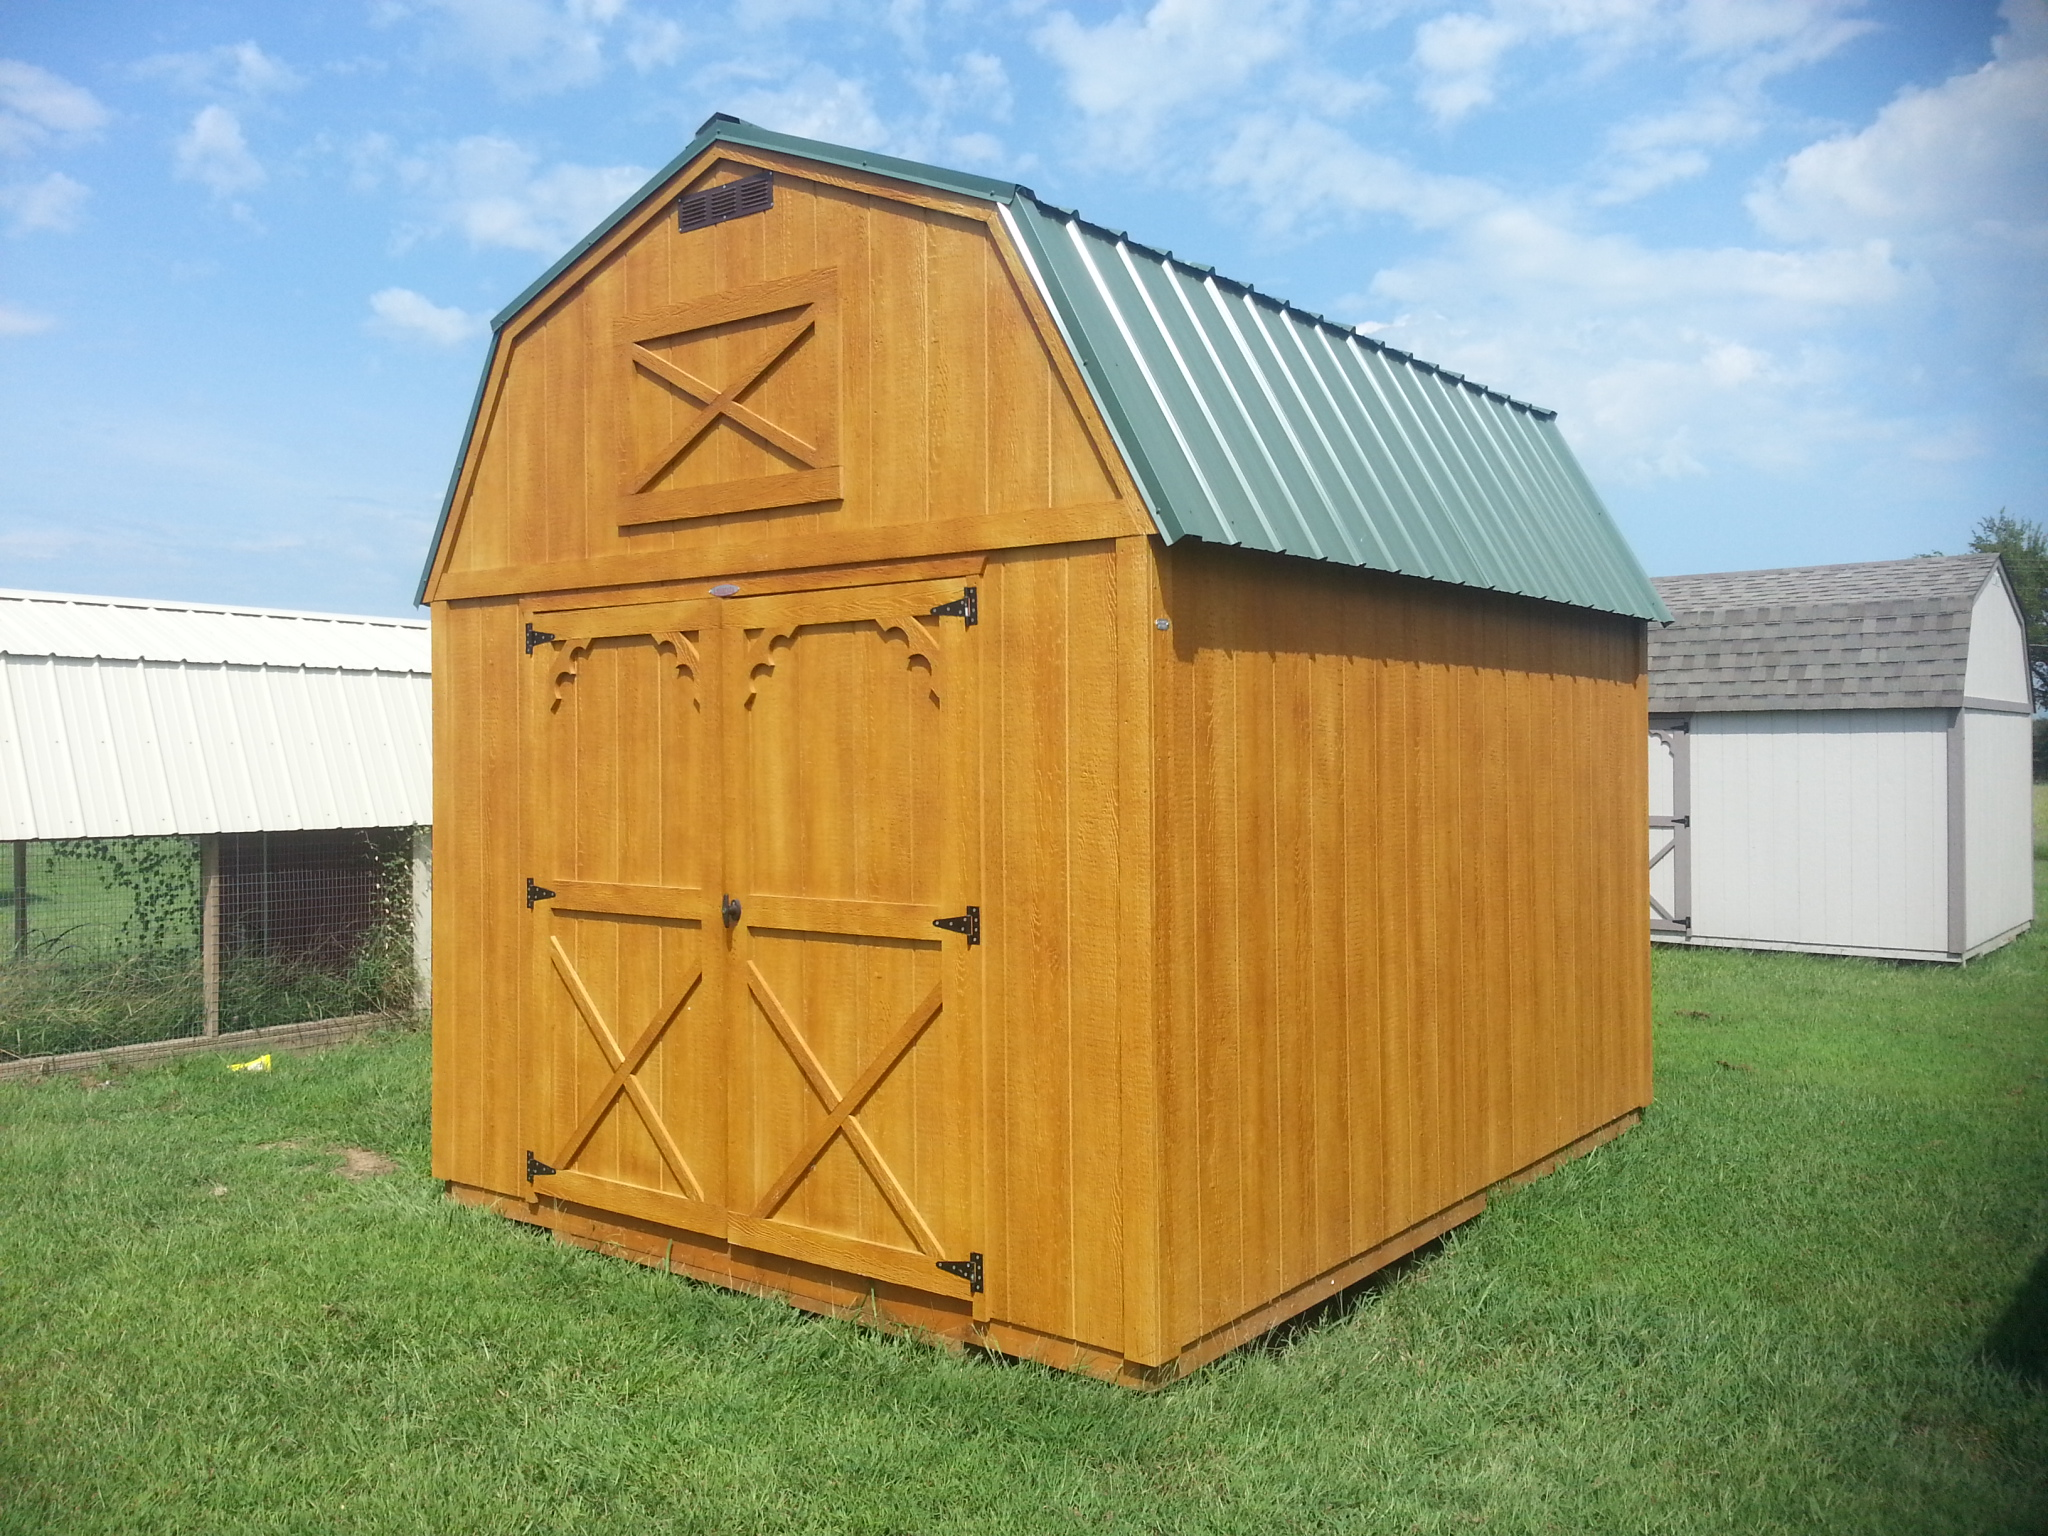 Home | Trailers, Portable Storage Buildings, and Carports